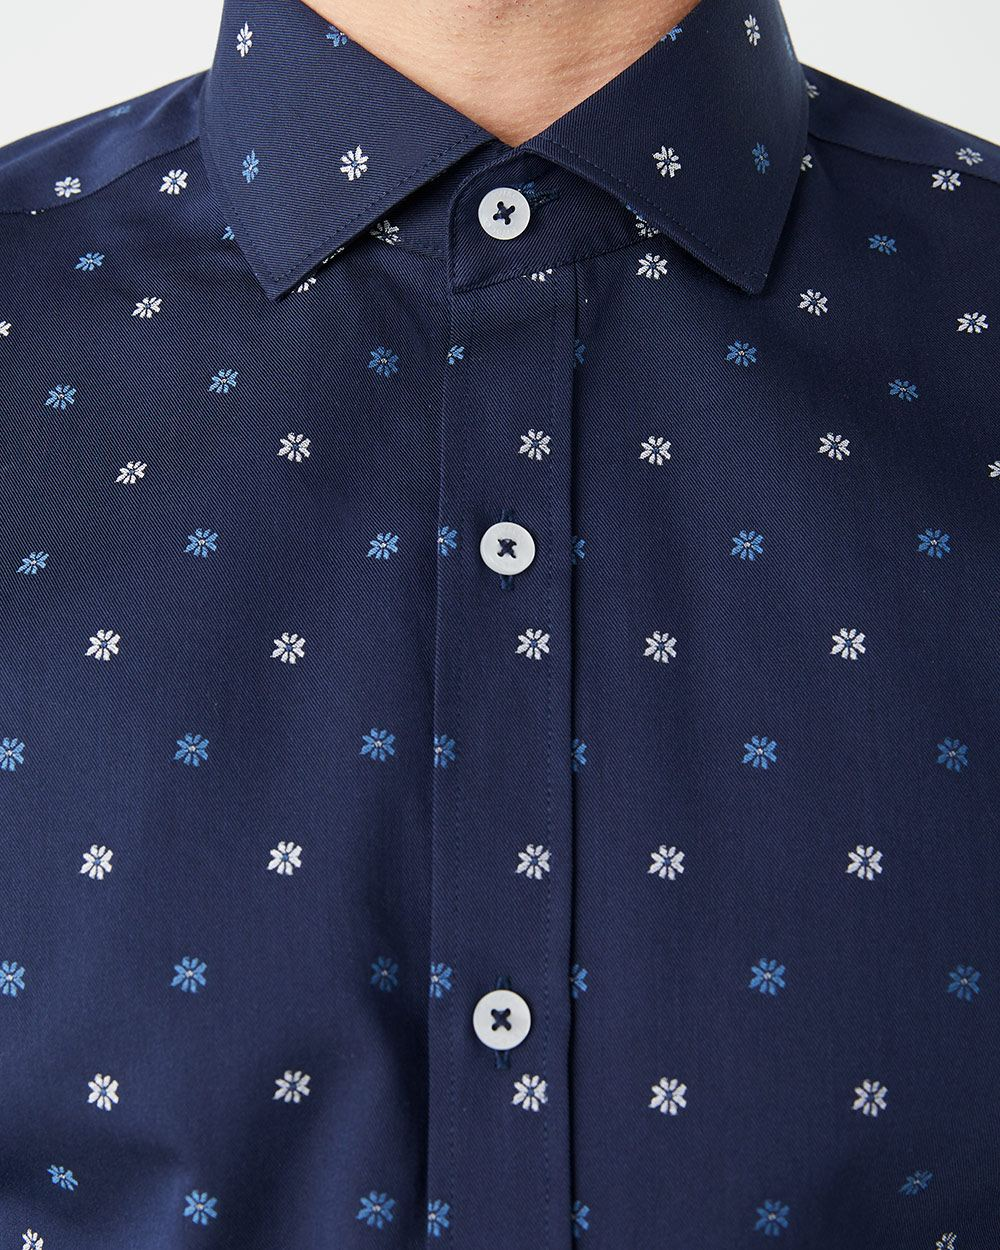 Slim Fit floral clipping dress shirt